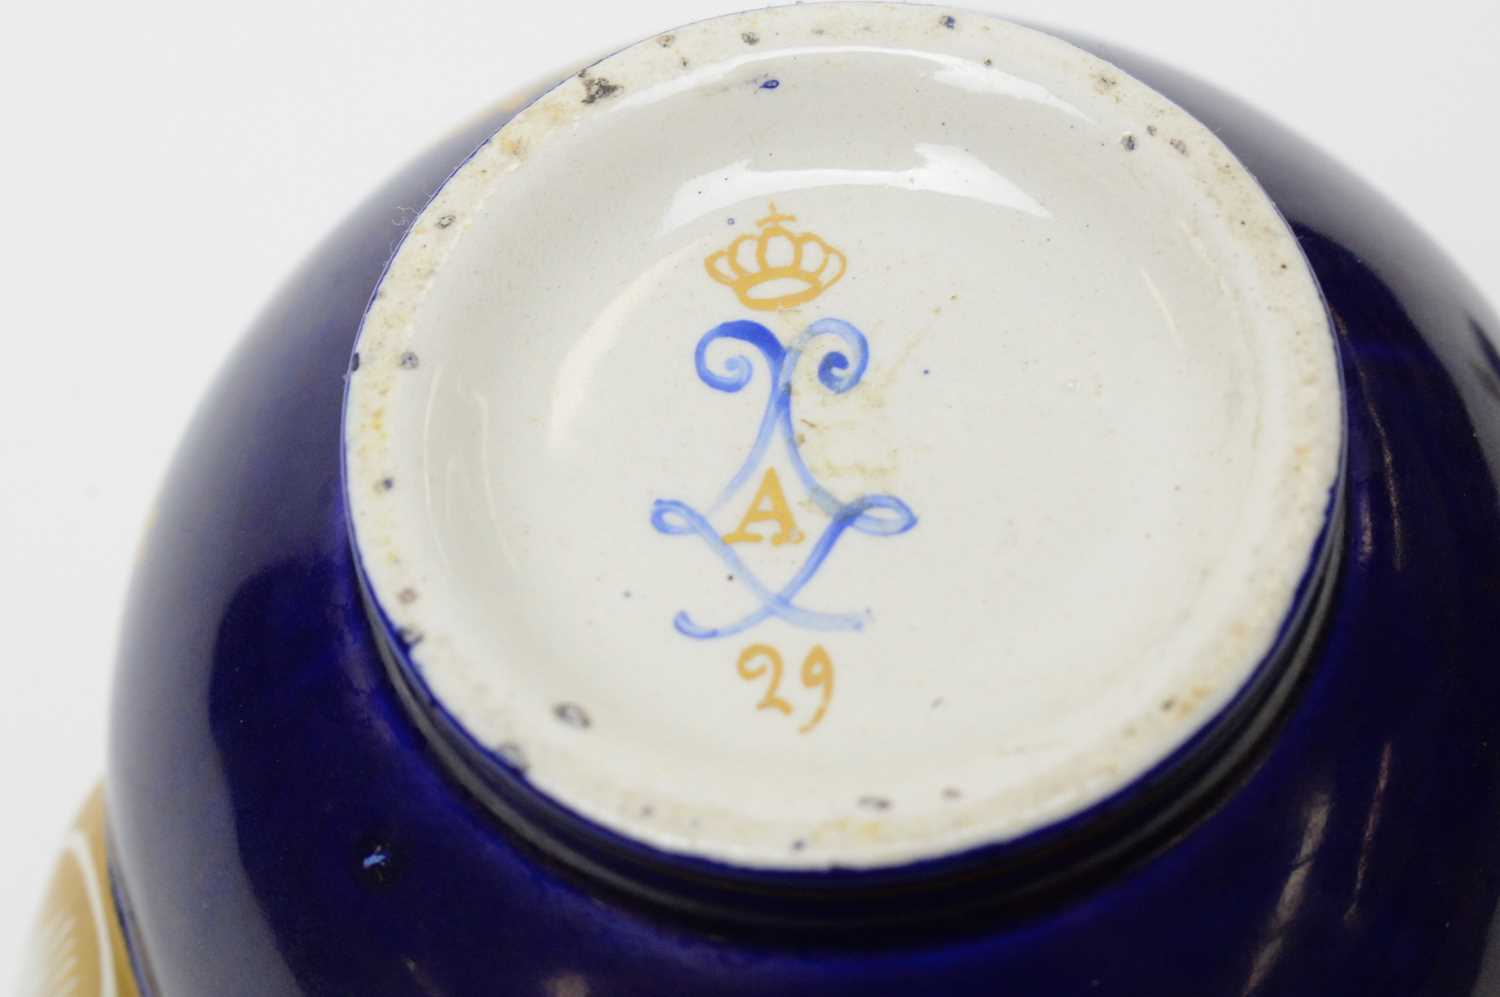 Sevres style coffee pot - Image 2 of 3